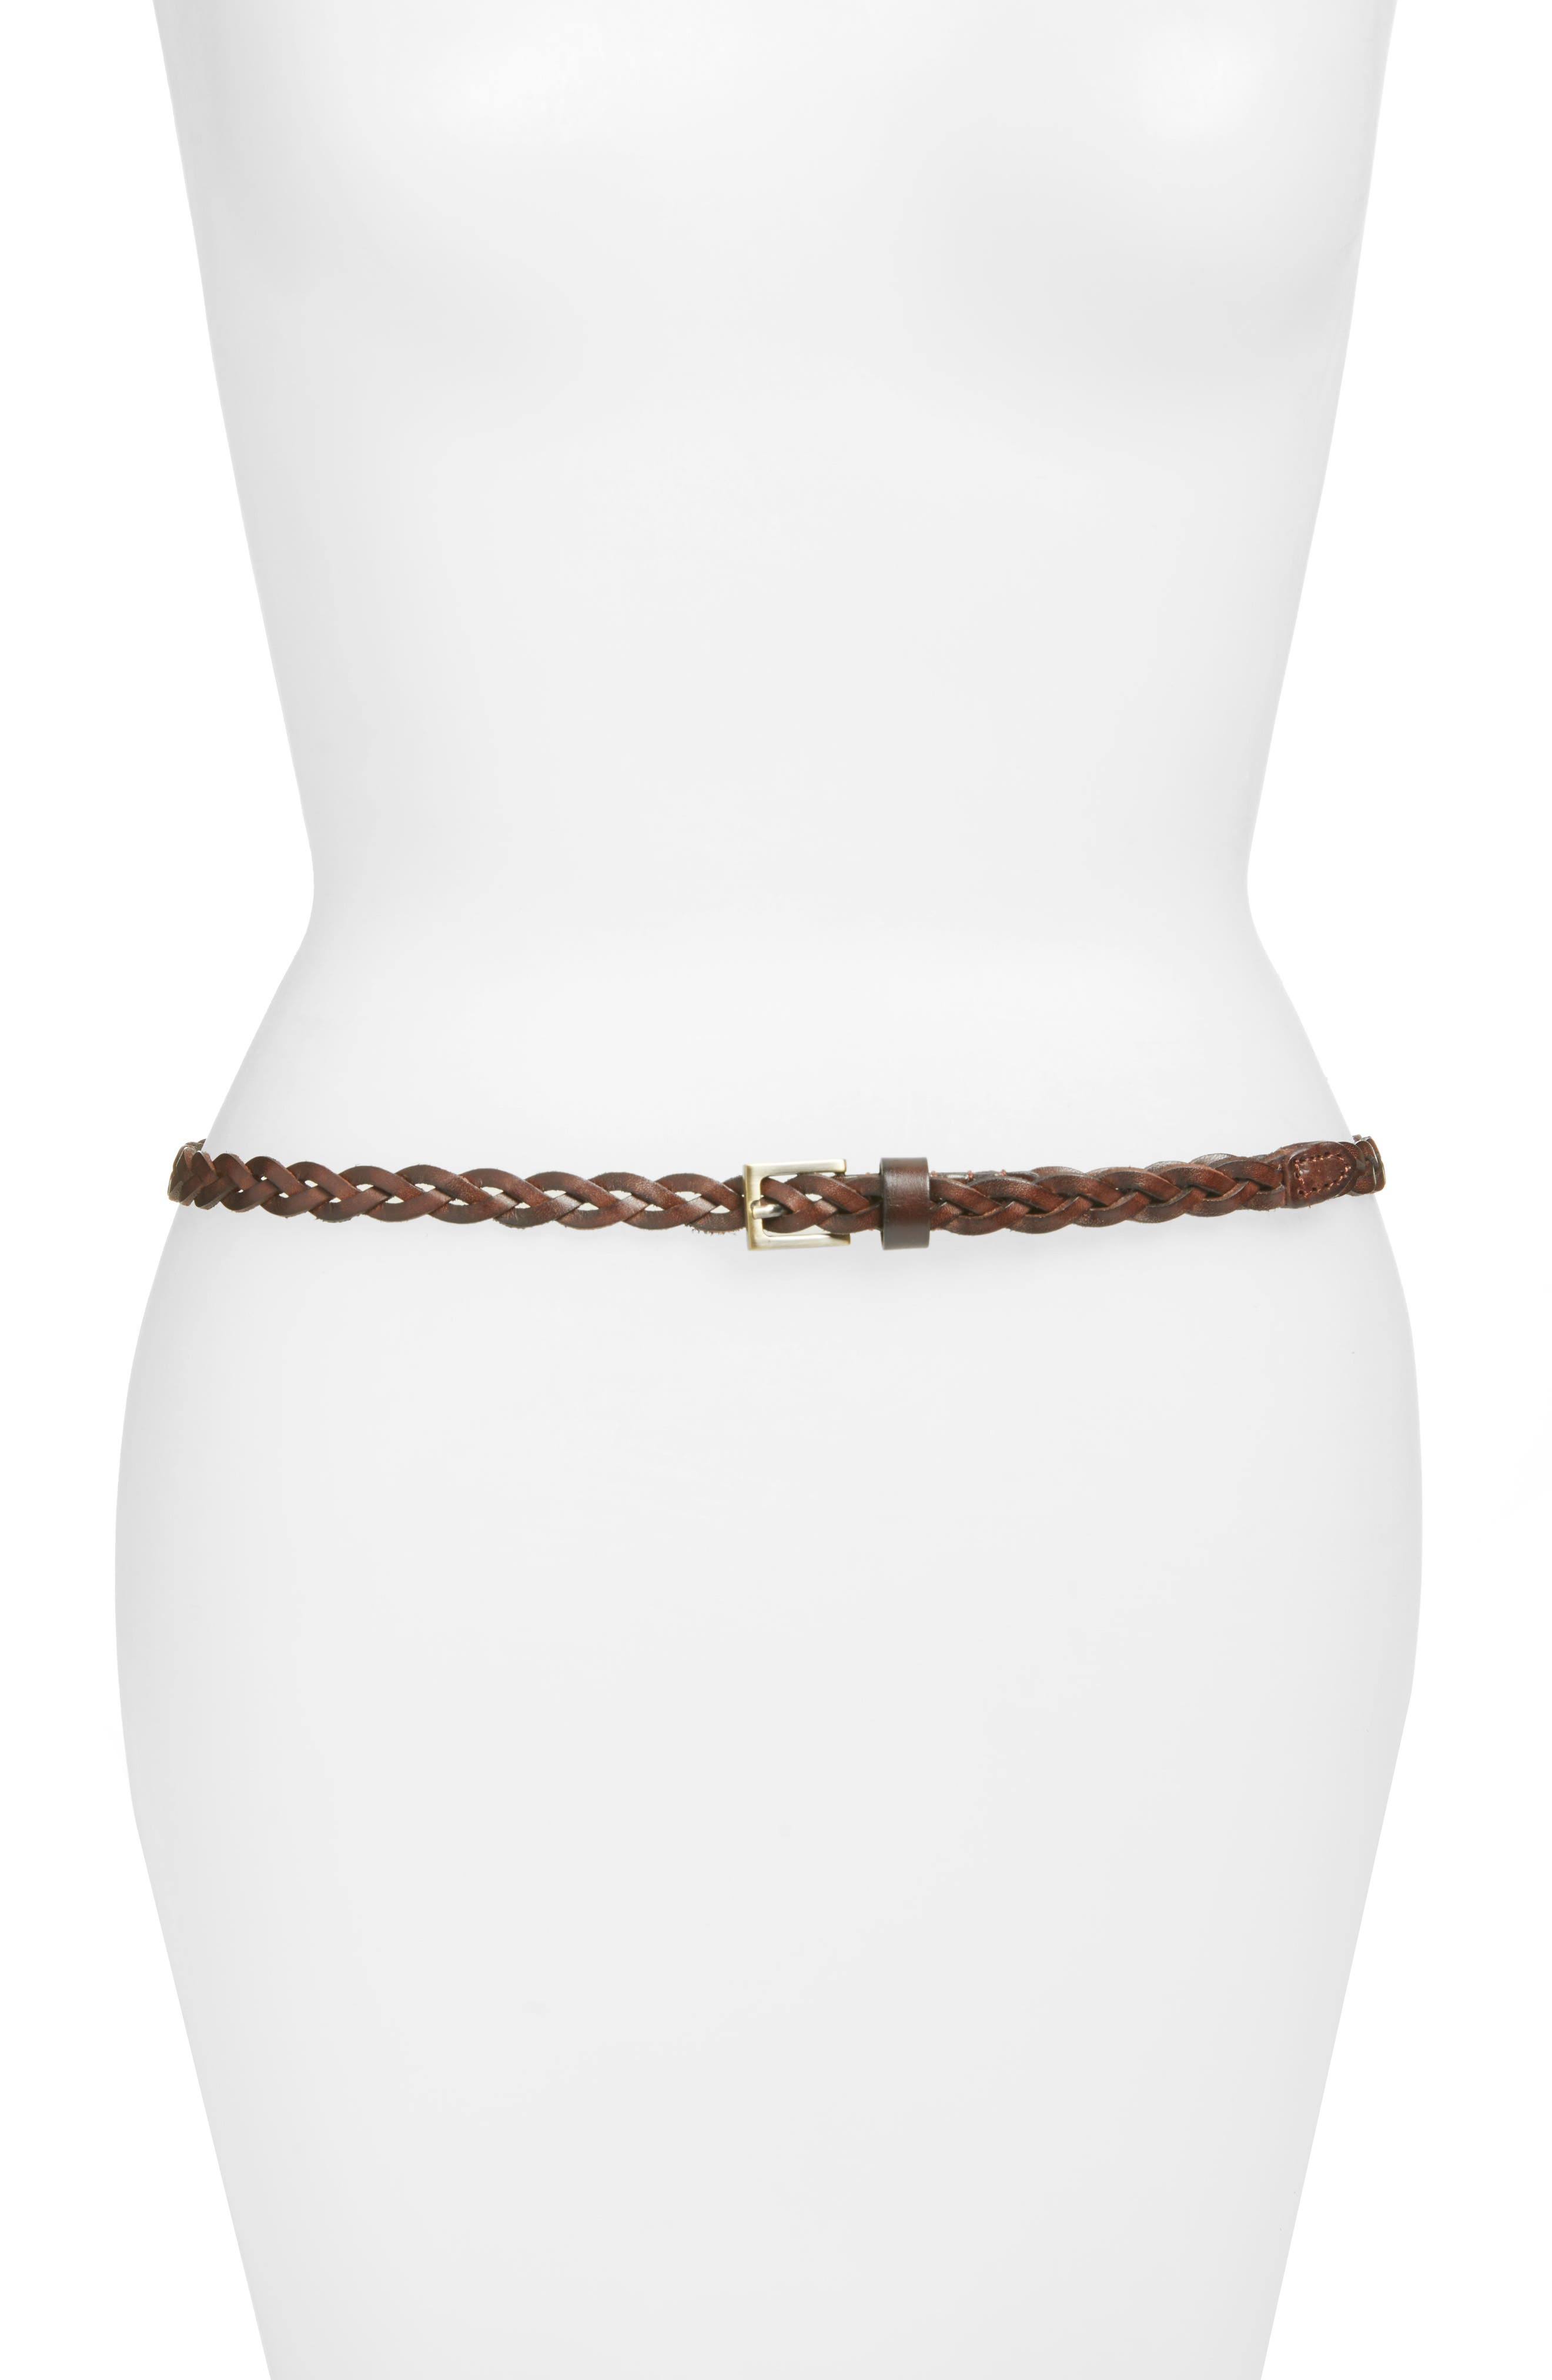 Lawrence Braided Leather Belt,                             Main thumbnail 1, color,                             Capp